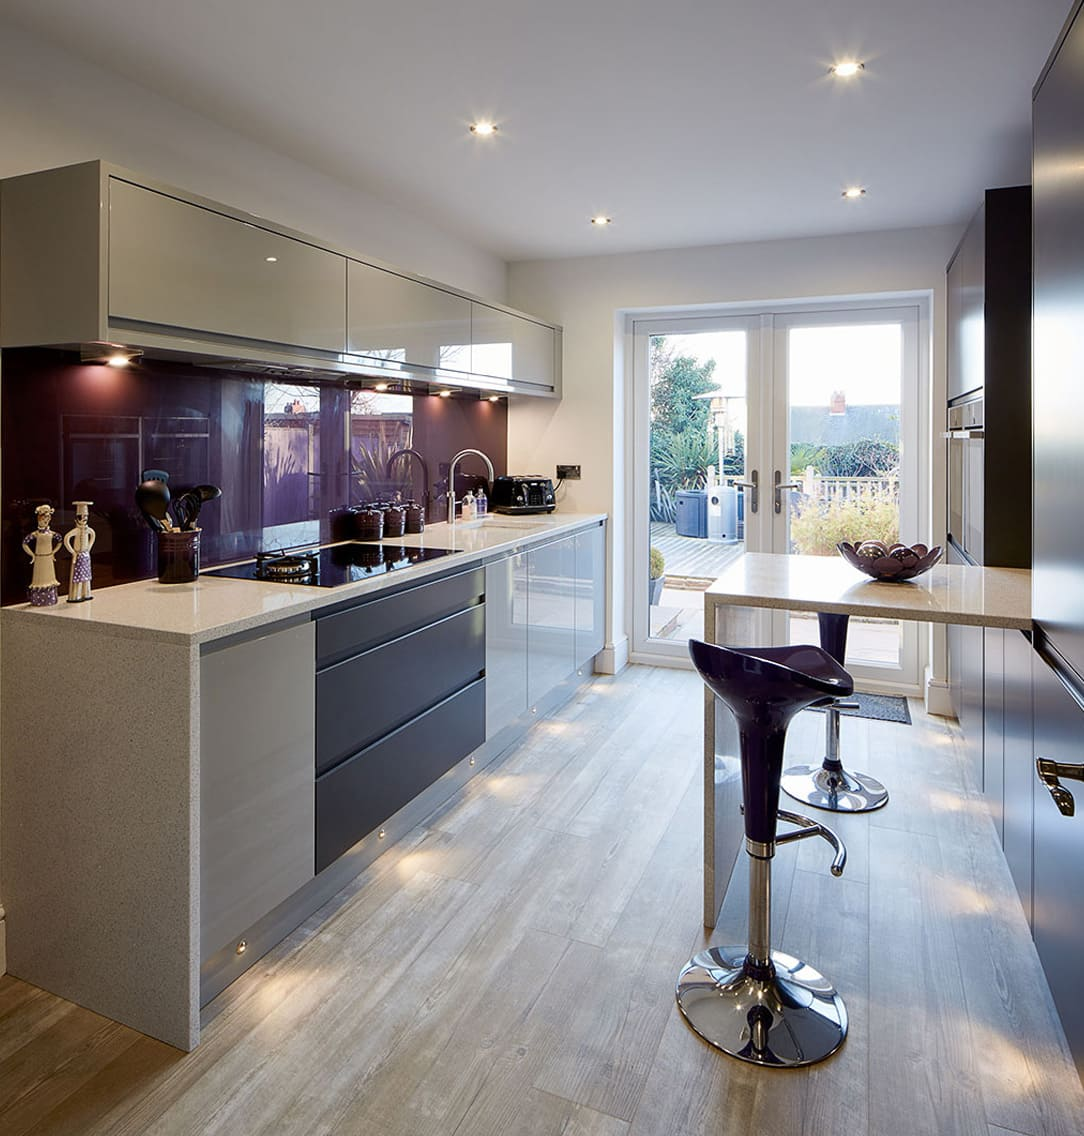 Inline Shaped Kitchen Inspired by Bliss Kitchen